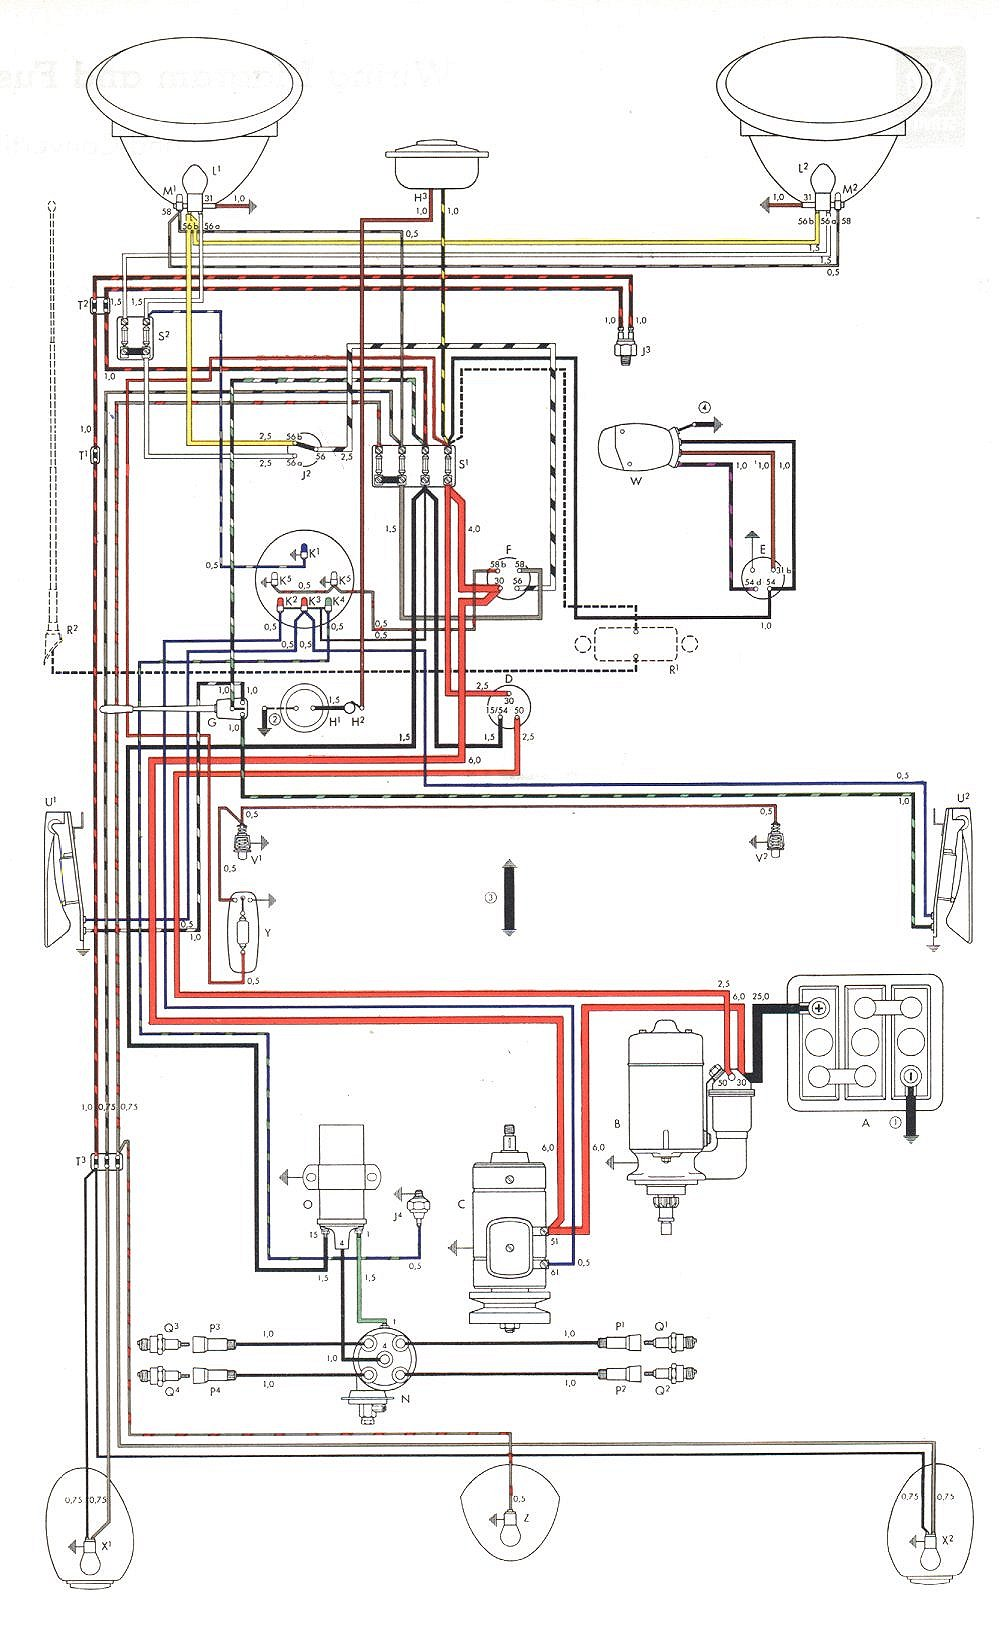 bug 58+59 euro vw beetle starter wiring diagram ignition wire diagram for 1974 vw vw bug wiring harness installation at crackthecode.co